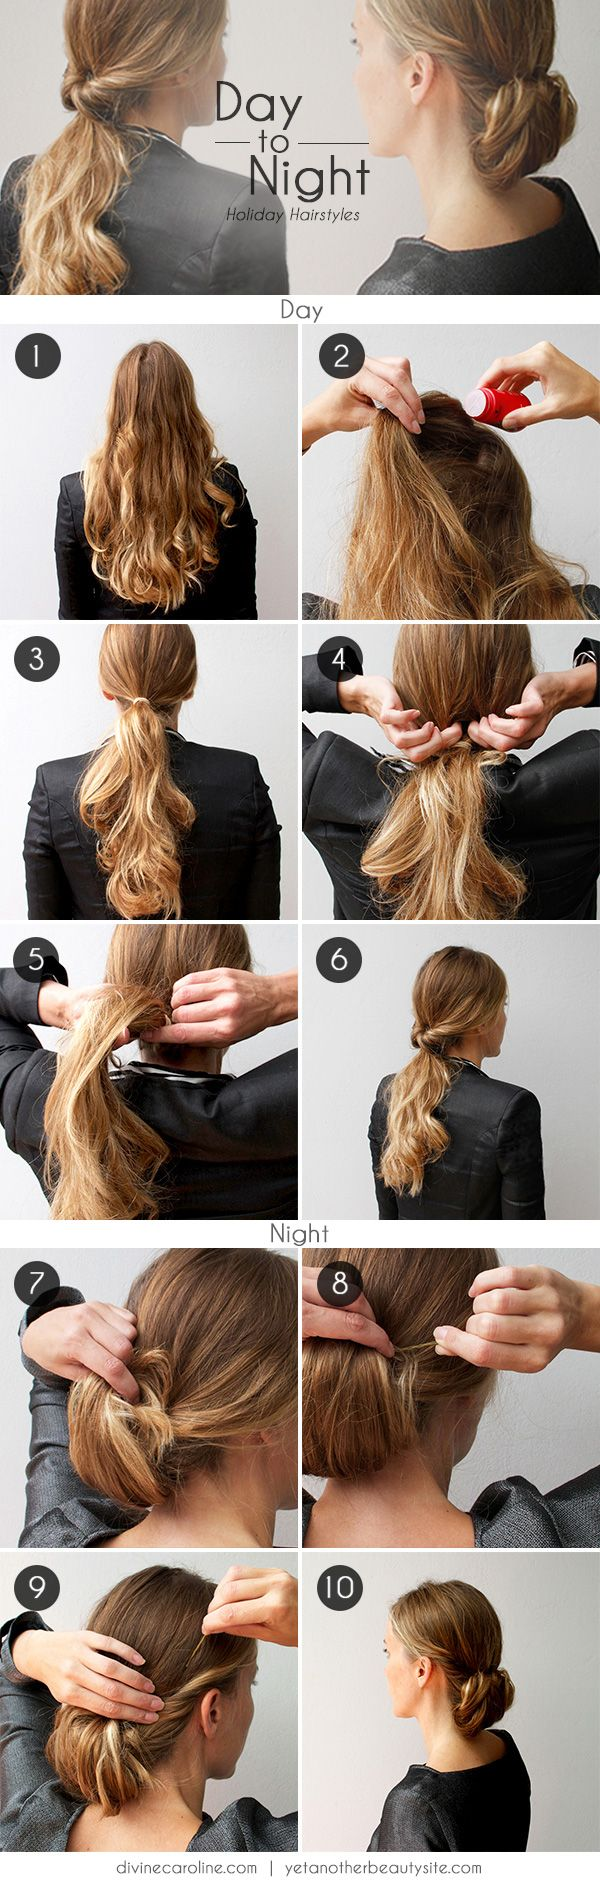 easy day-to-night hairstyle | style: hair | night hairstyles